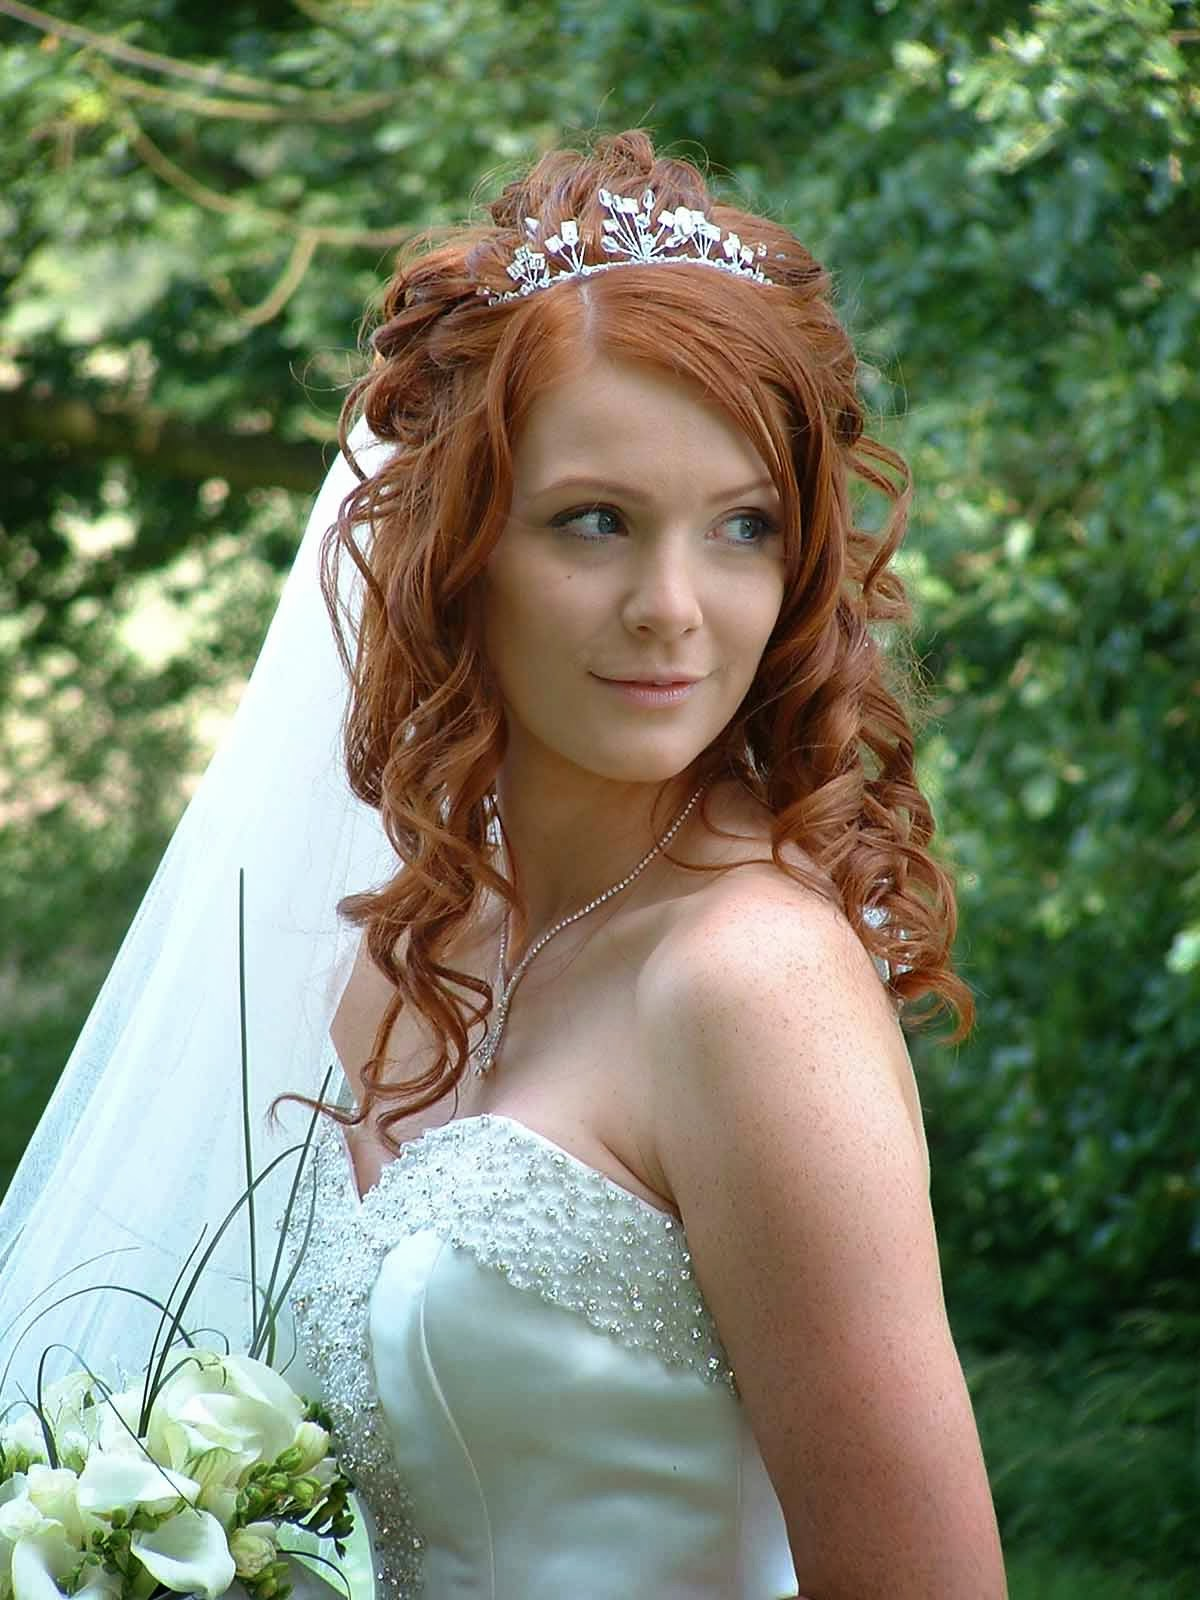 Wedding Hairstyles With Tiara Hairstyle Trends - Hairstyle with wedding gown